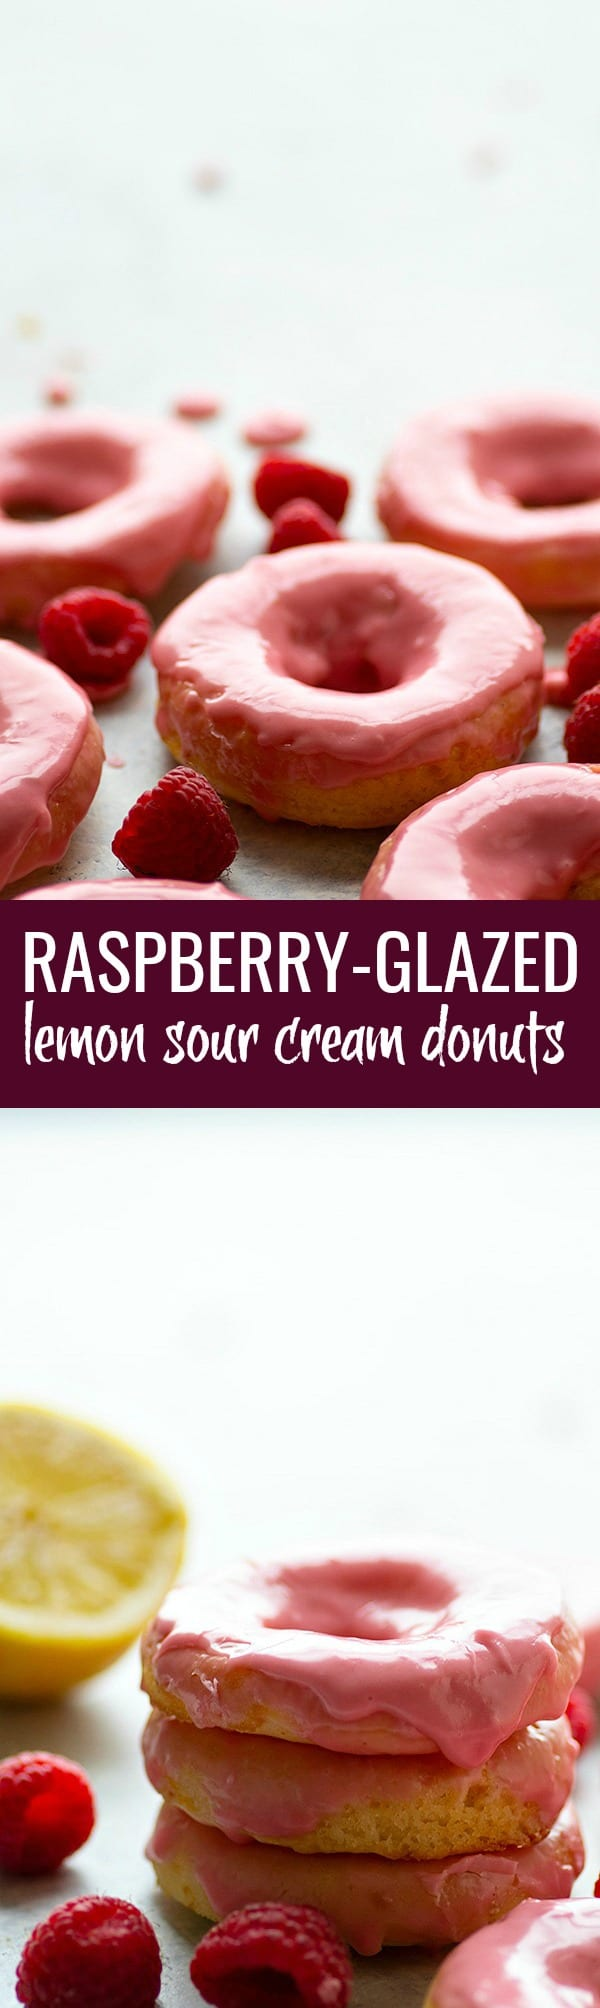 Raspberry-Glazed Lemon Sour Cream Donuts - Soft, tangy lemon sour cream donuts are glazed in a sweet raspberry glaze and a much healthier way to get your donut fix!